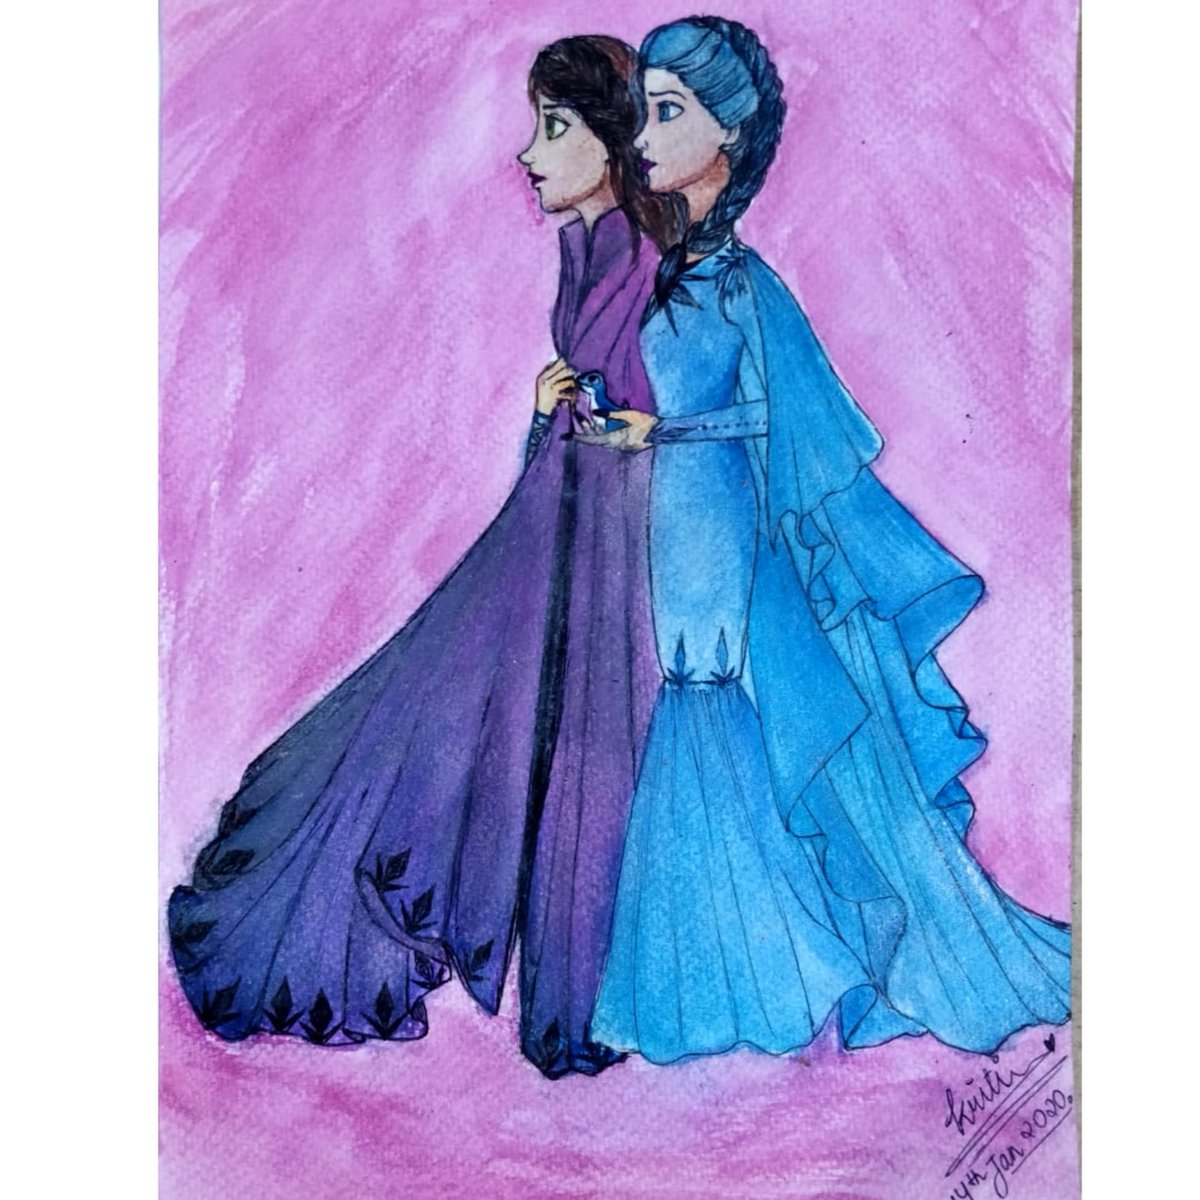 Anna and Elsa in outfits designed by me. ✌🏻  #emeraldhime #art #artist #drawing #artwork #photooftheday #fashion #style #frozen #painting #artistsoninstagram #illustrationart #fashiondesign #design  #illustration #sketch #artistsontwitter